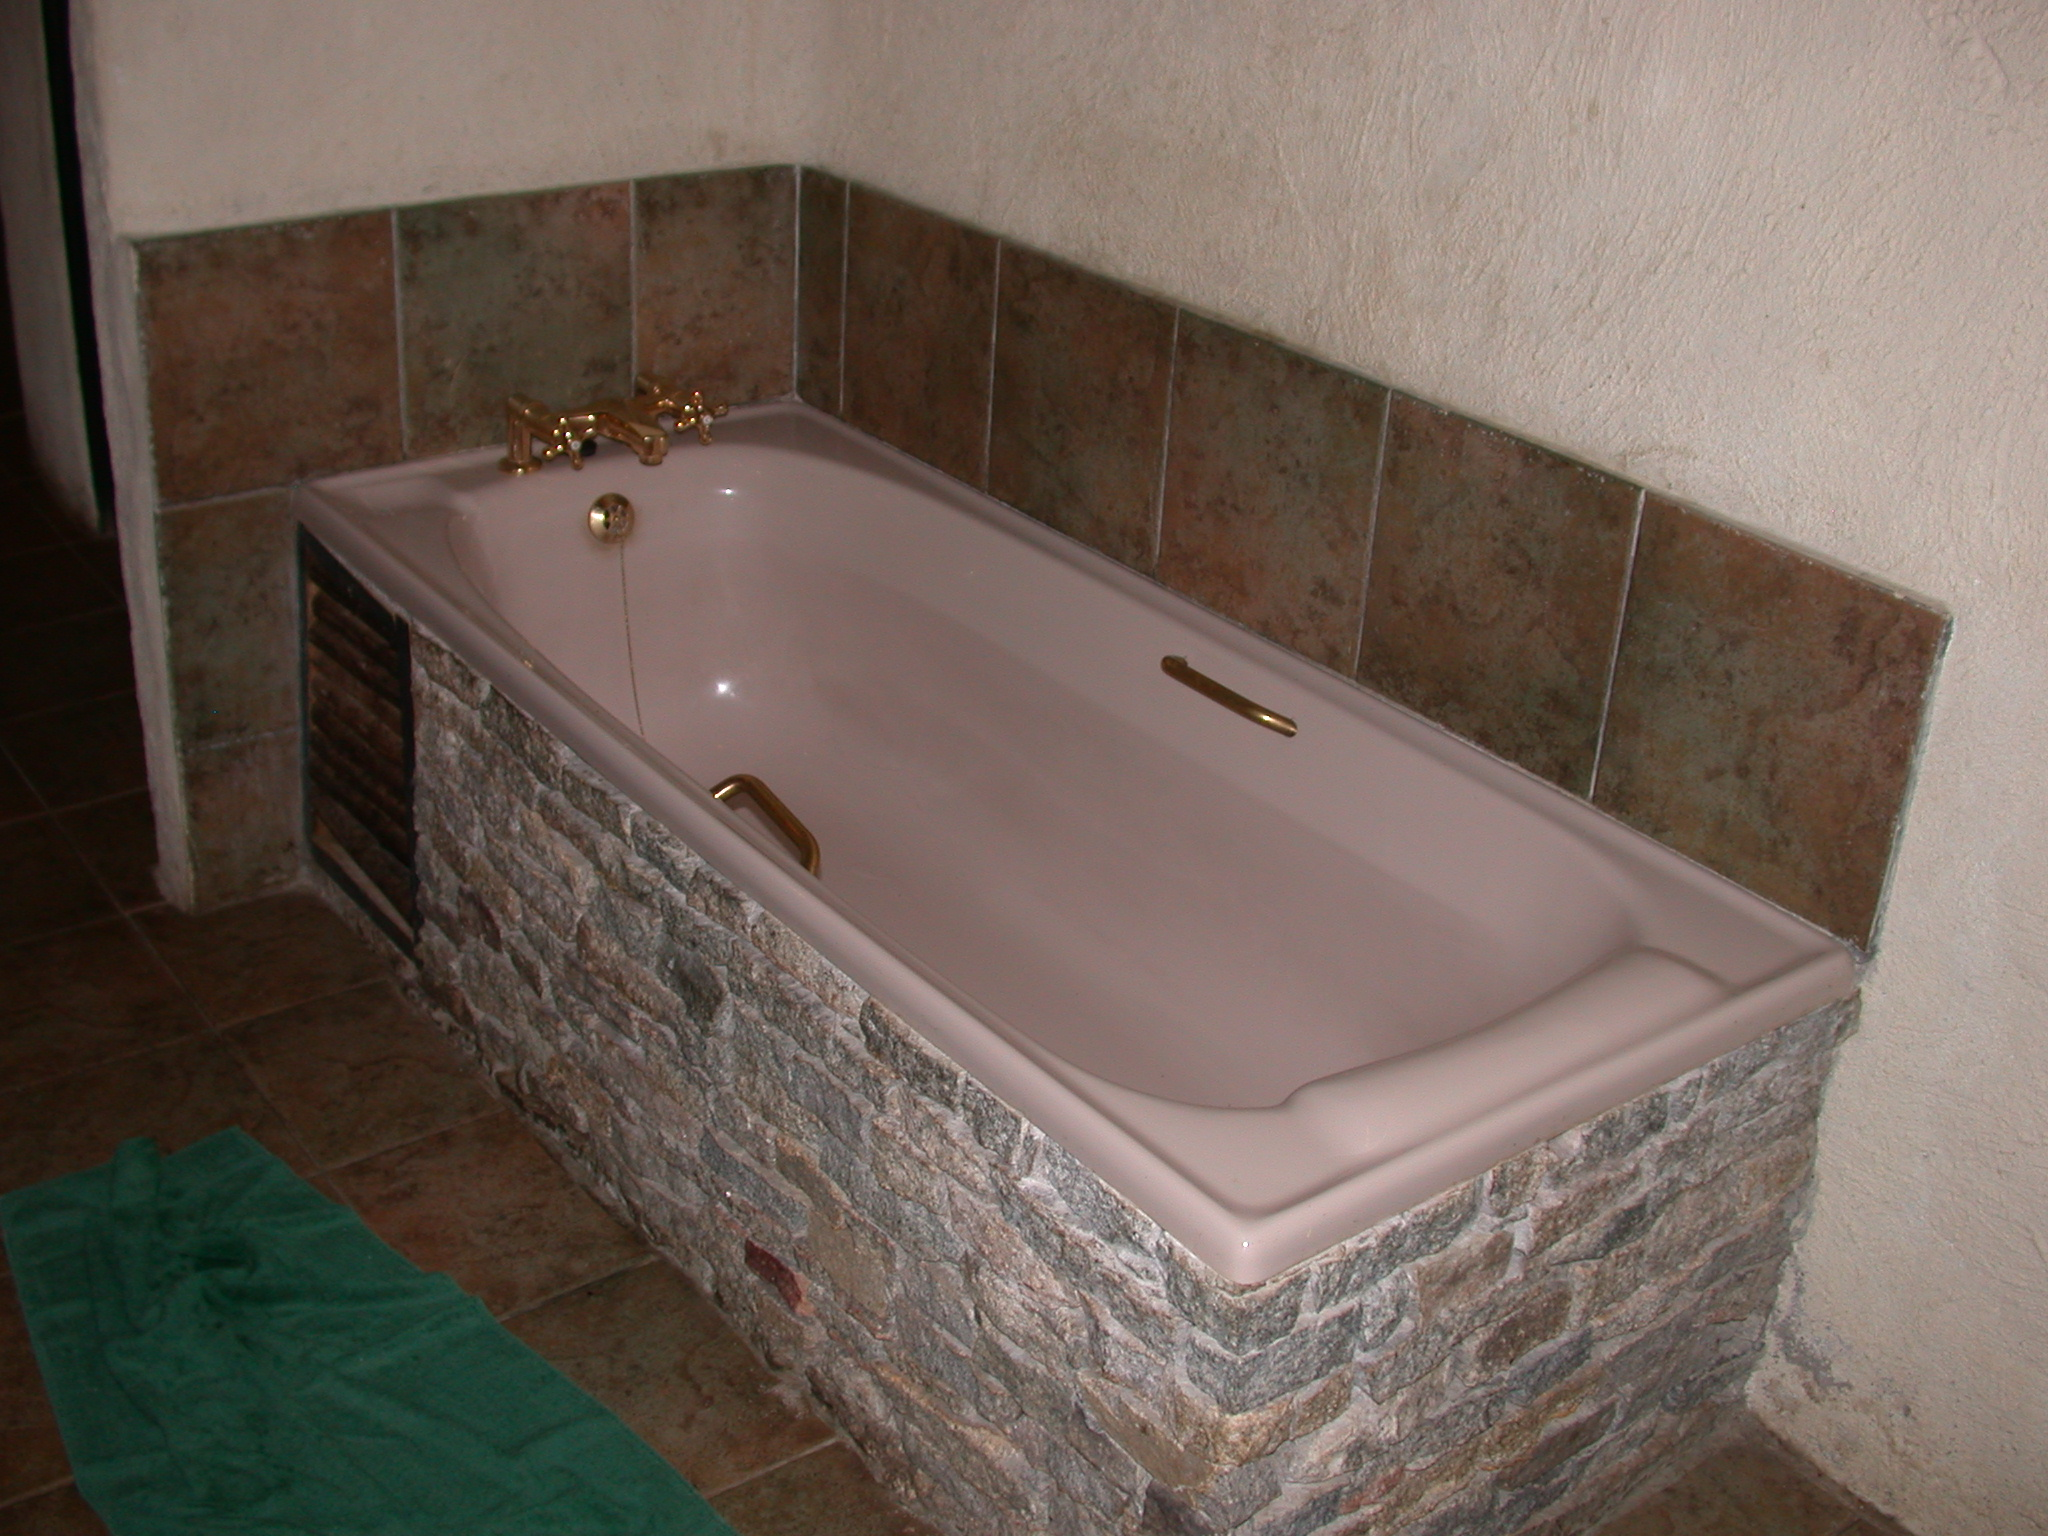 Bathtub in Bathroom of My Suite at the Ancient City Lodge, Great Zimbabwe, Outside Masvingo, Zimbabwe